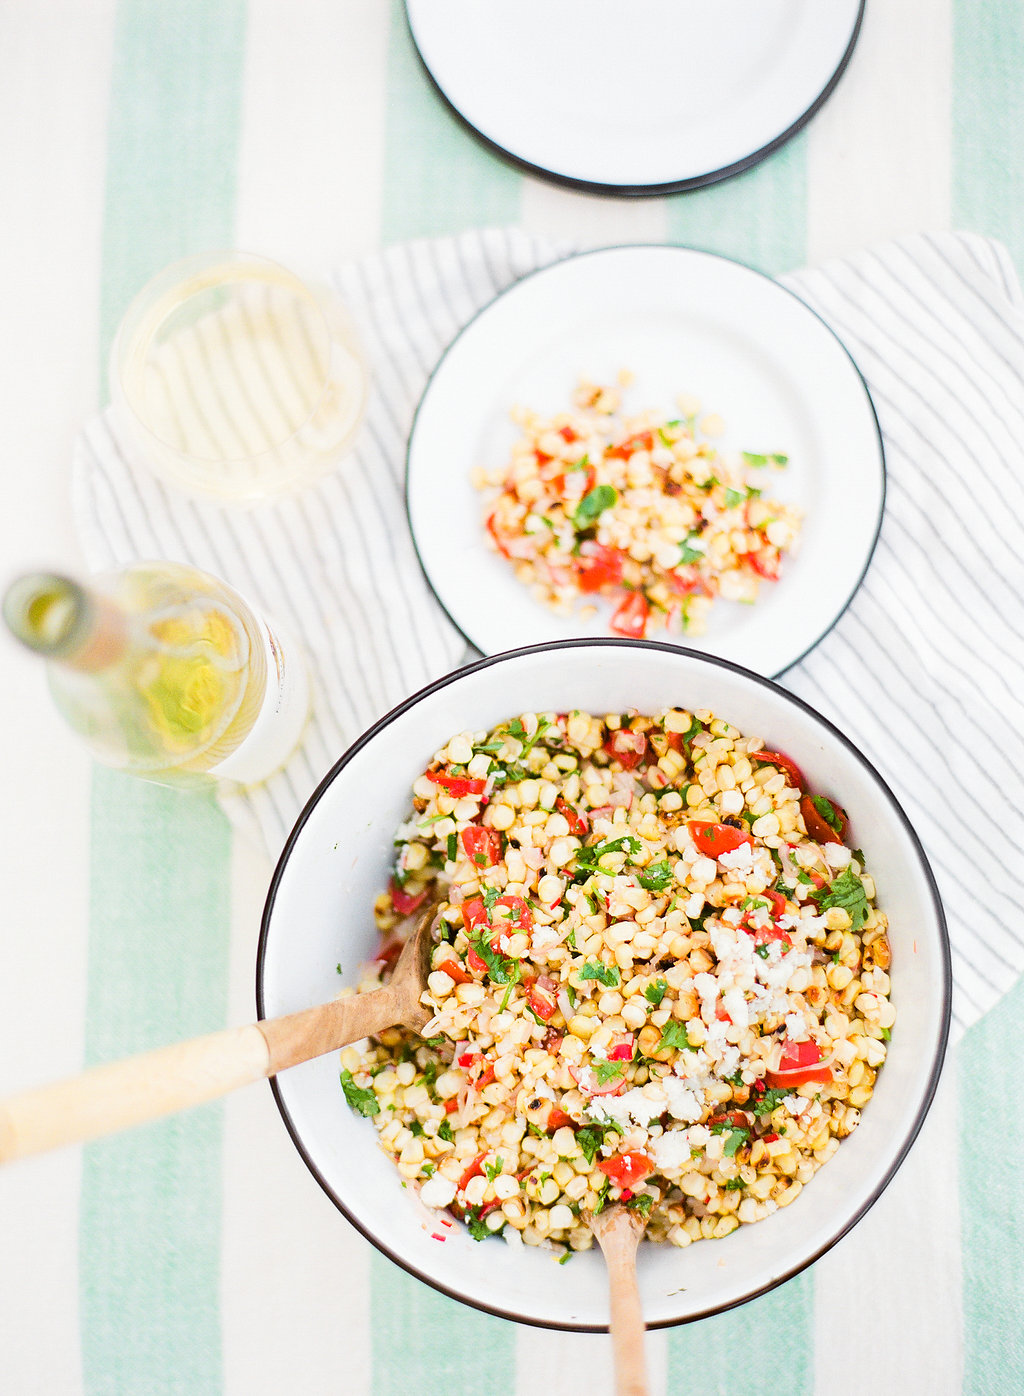 Pair this delicious charred corn salad #recipe with some Kendall-Jackson Vintner's Reserve Pinot Gris for the ultimate summer palette. No joke, it's like they were meant to be together. The sweetness from the corn brings out the flavors in the wine and BOOM, game over!